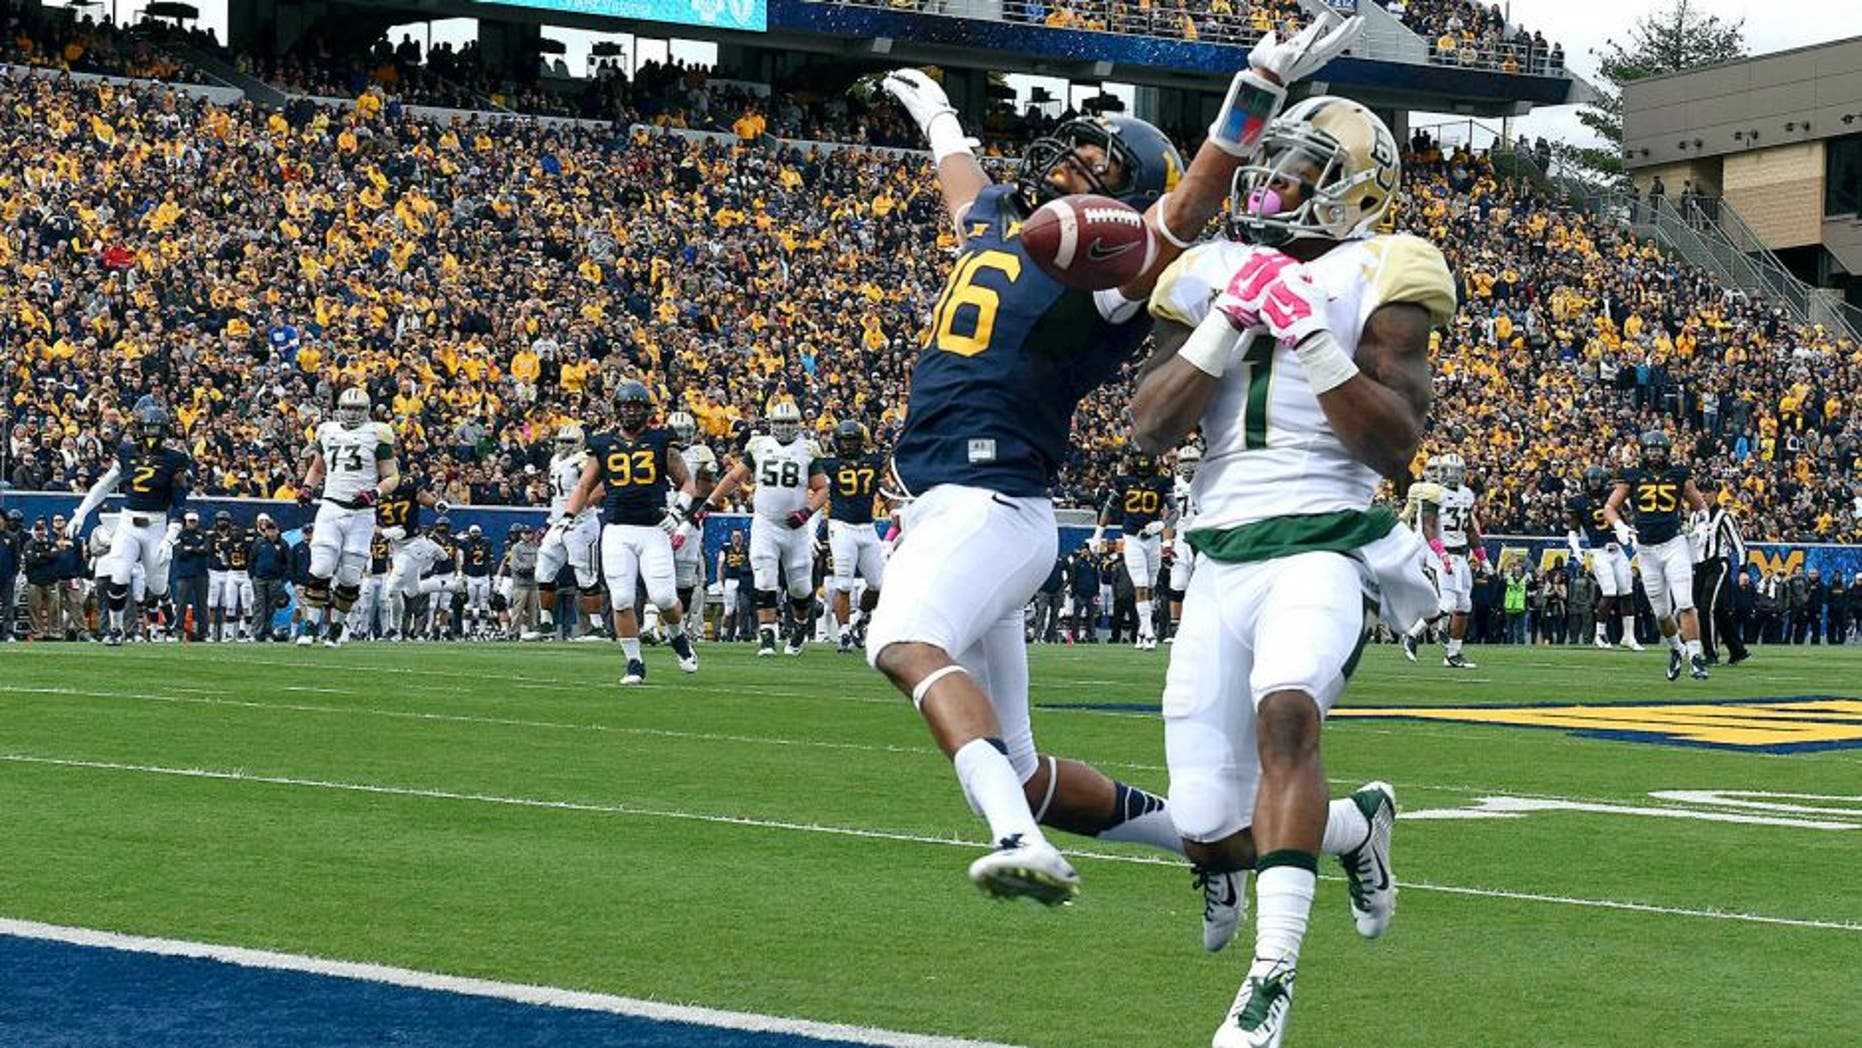 Oct 18, 2014; Morgantown, WV, USA; West Virginia Mountaineers cornerback Terrell Chestnut (16) breaks up a intended pass to Baylor Bears running back Corey Coleman (1) on the goal line during the first quarter at Milan Puskar Stadium. Mandatory Credit: Tommy Gilligan-USA TODAY Sports